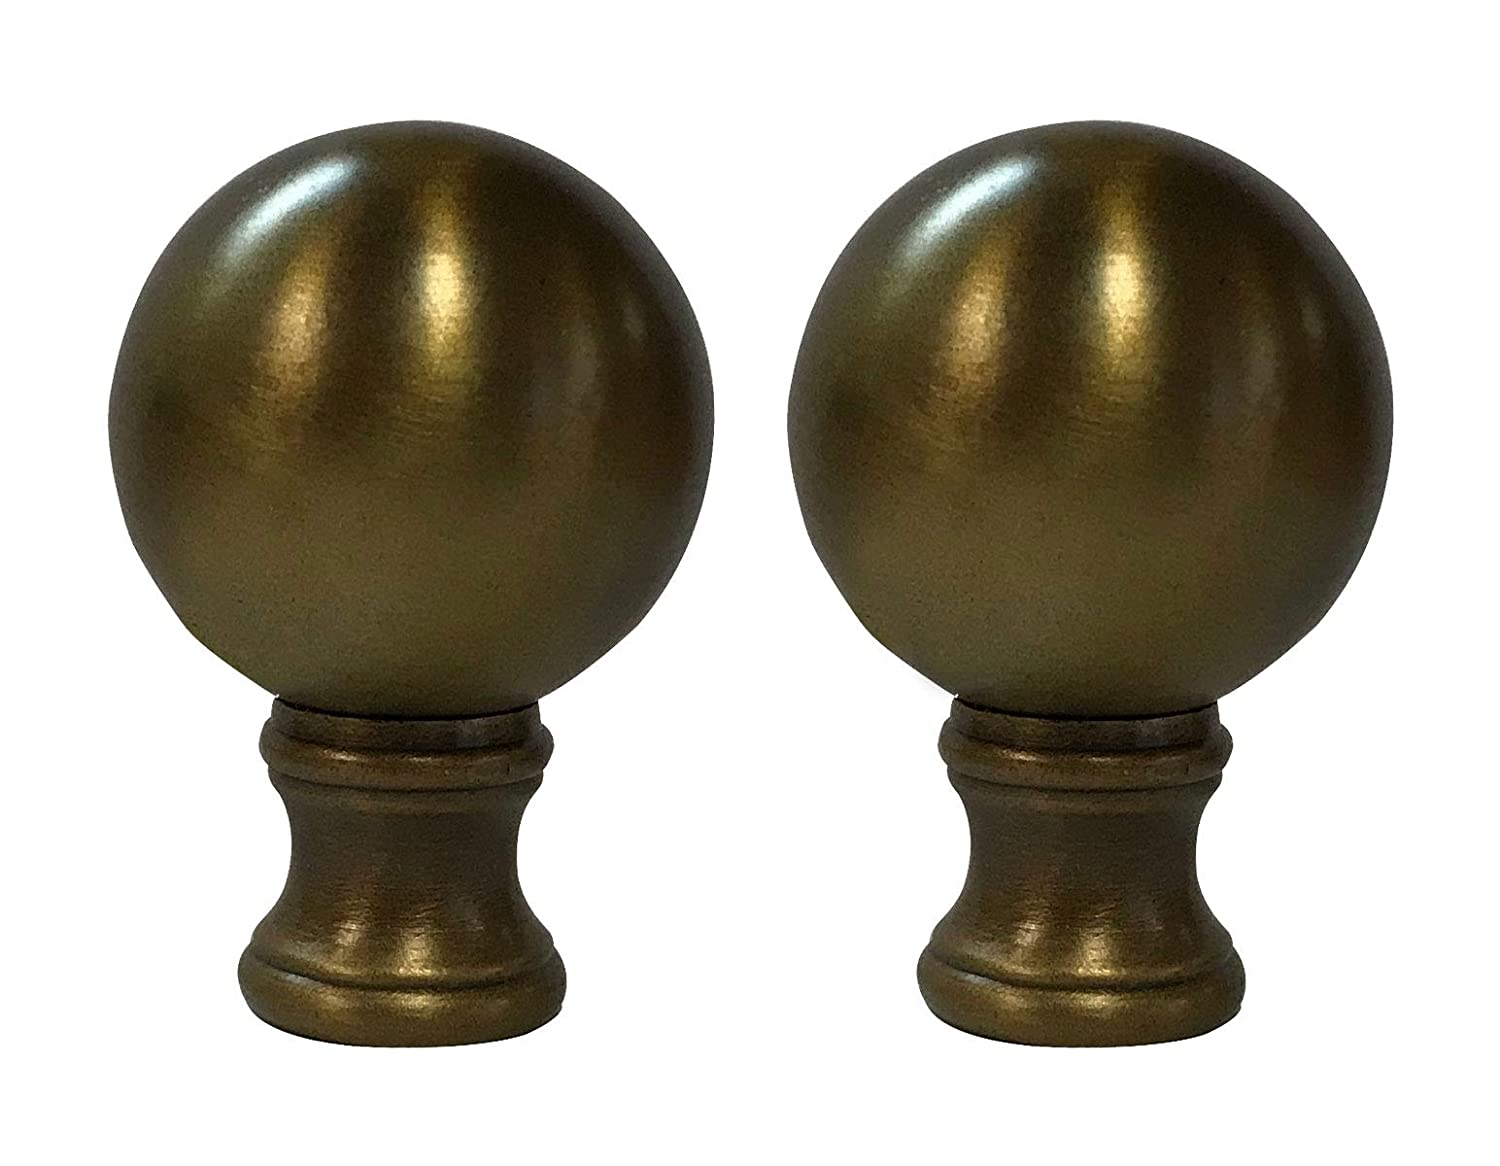 Machined Metal Lamp Finial **BALL DESIGN** Antique Brass finish Lamp Finial